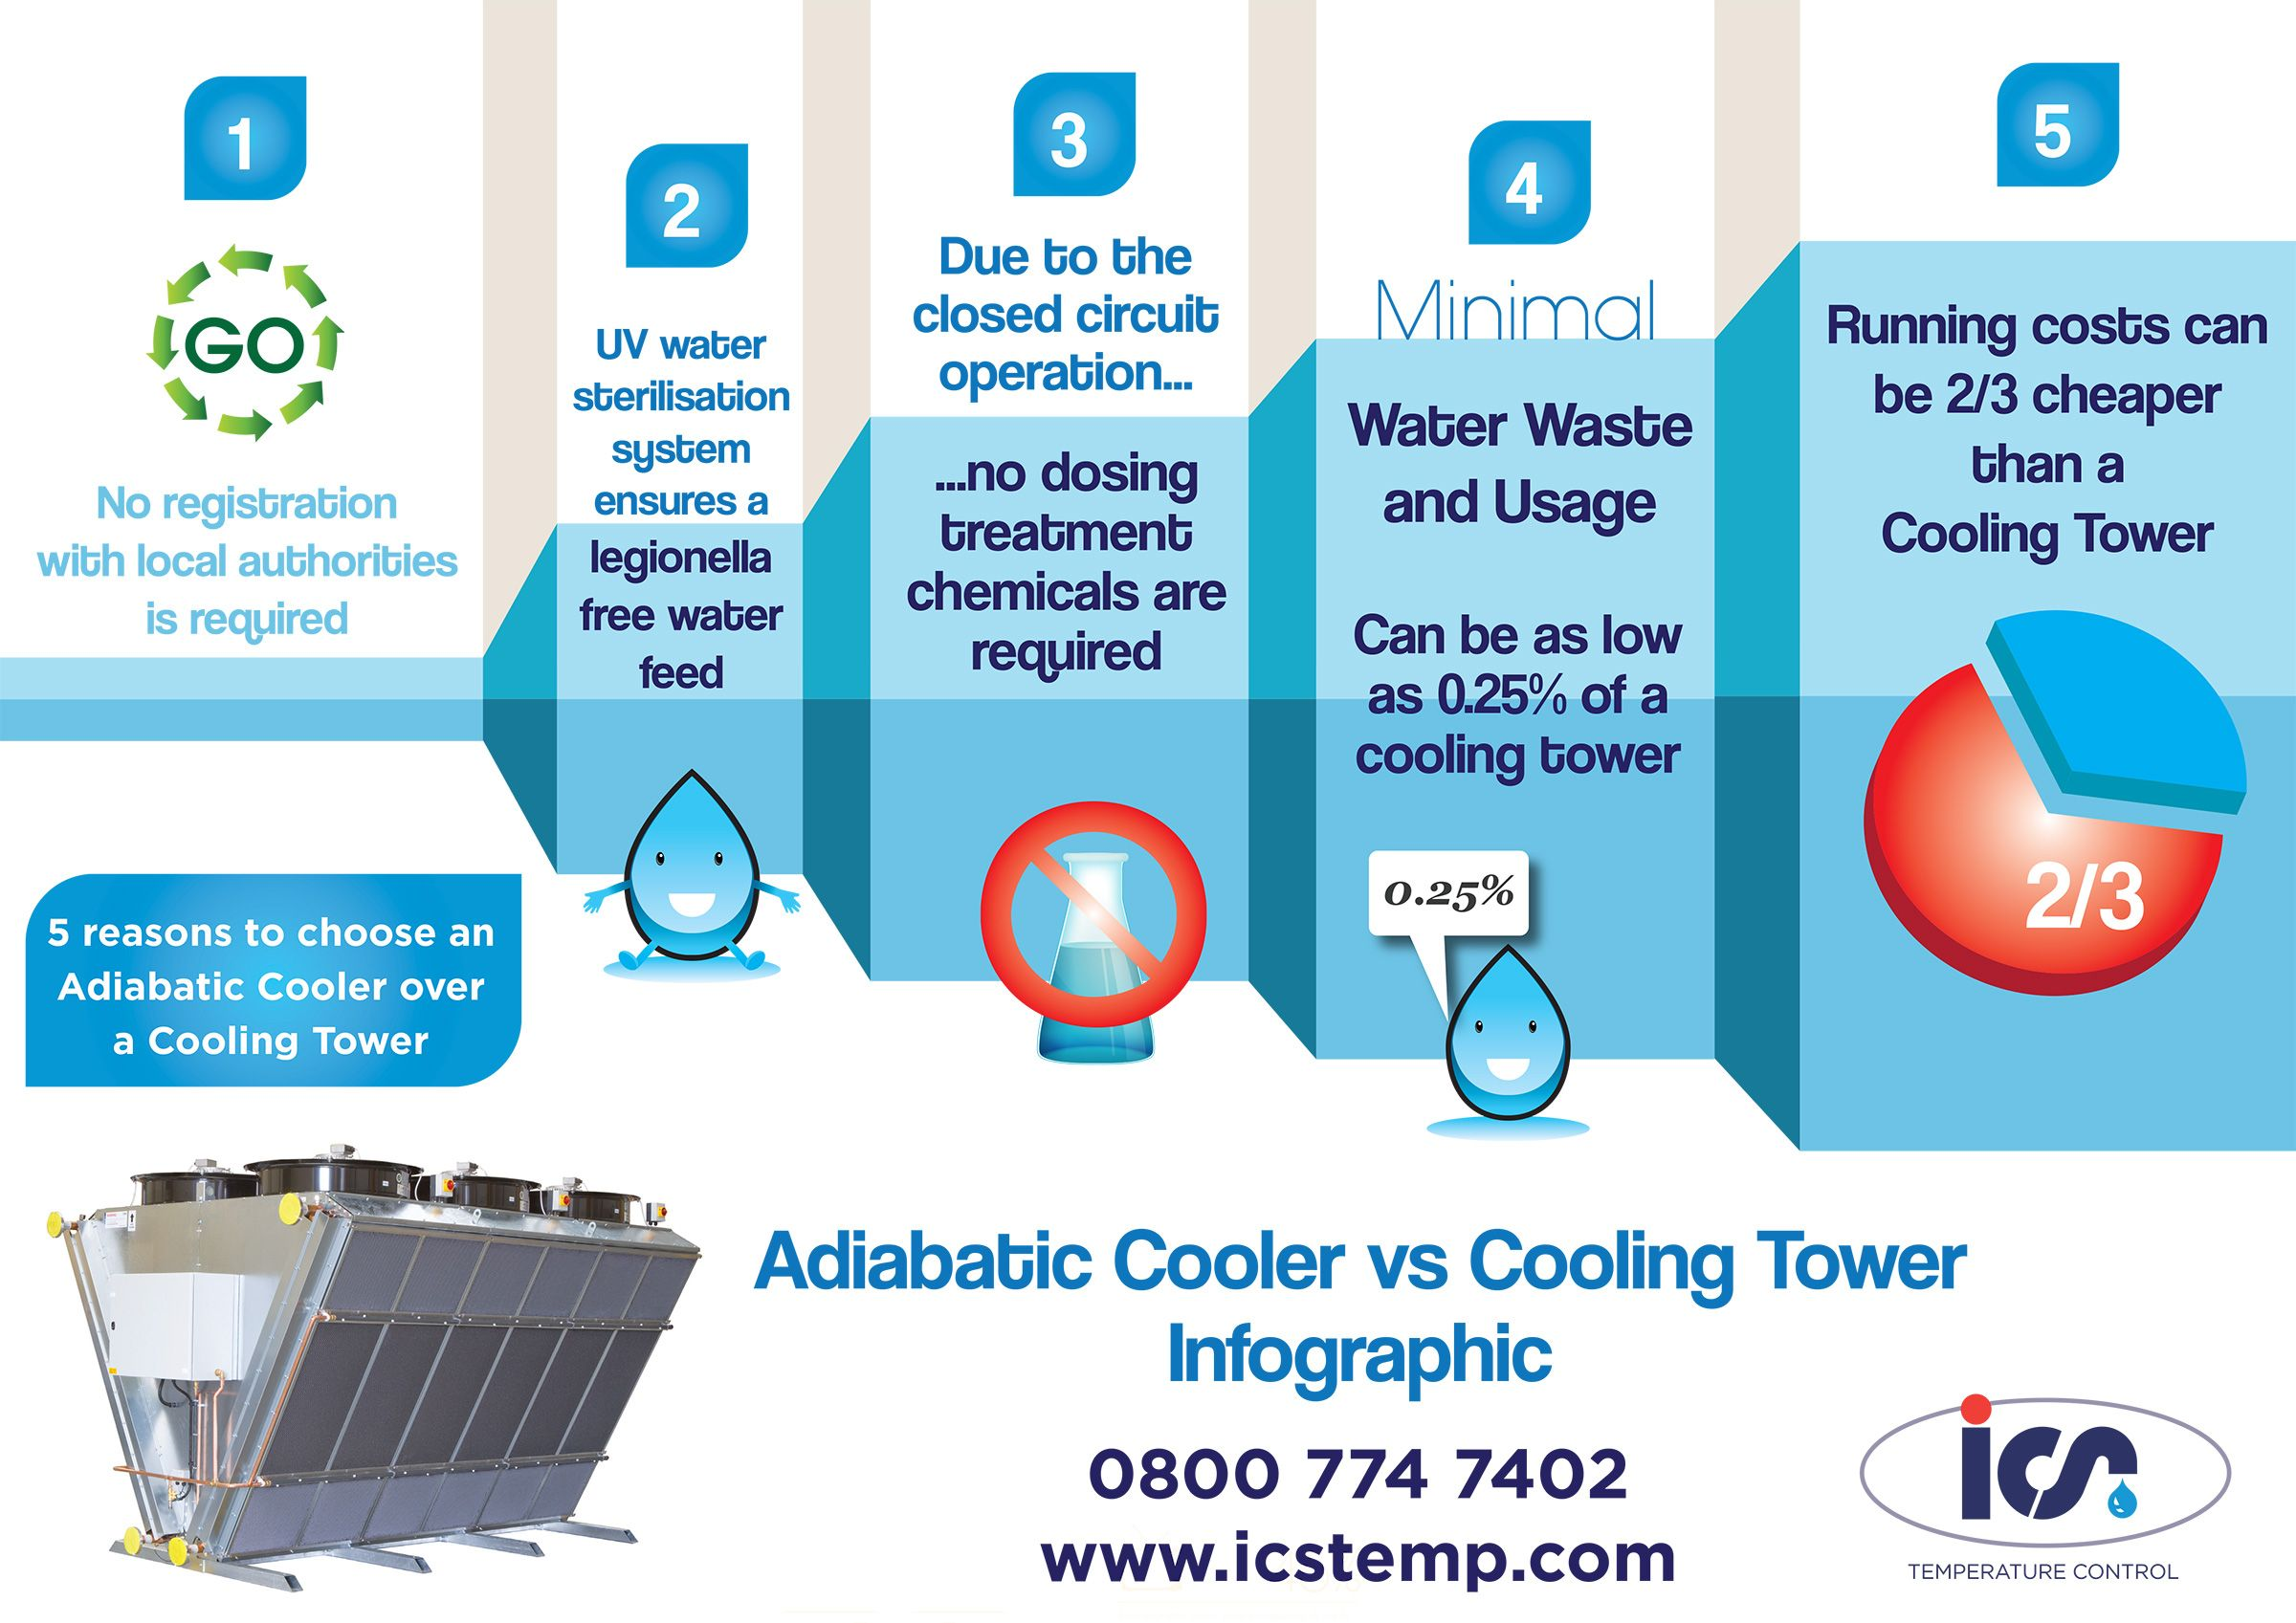 5 reasons to choose an Adiabatic Cooler over a Cooling